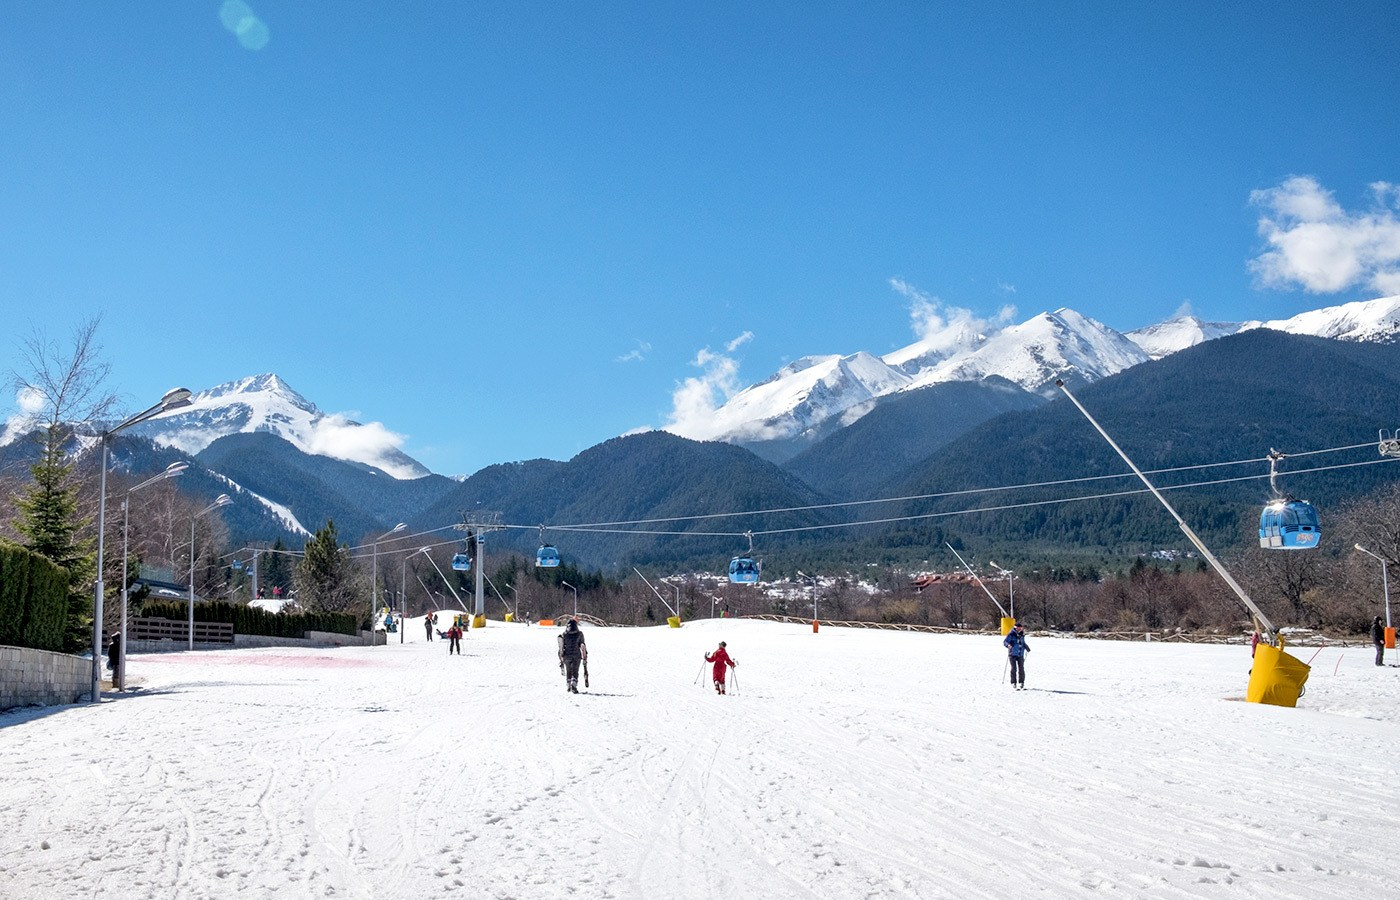 Skiers on the slopes at Bansko ski resort